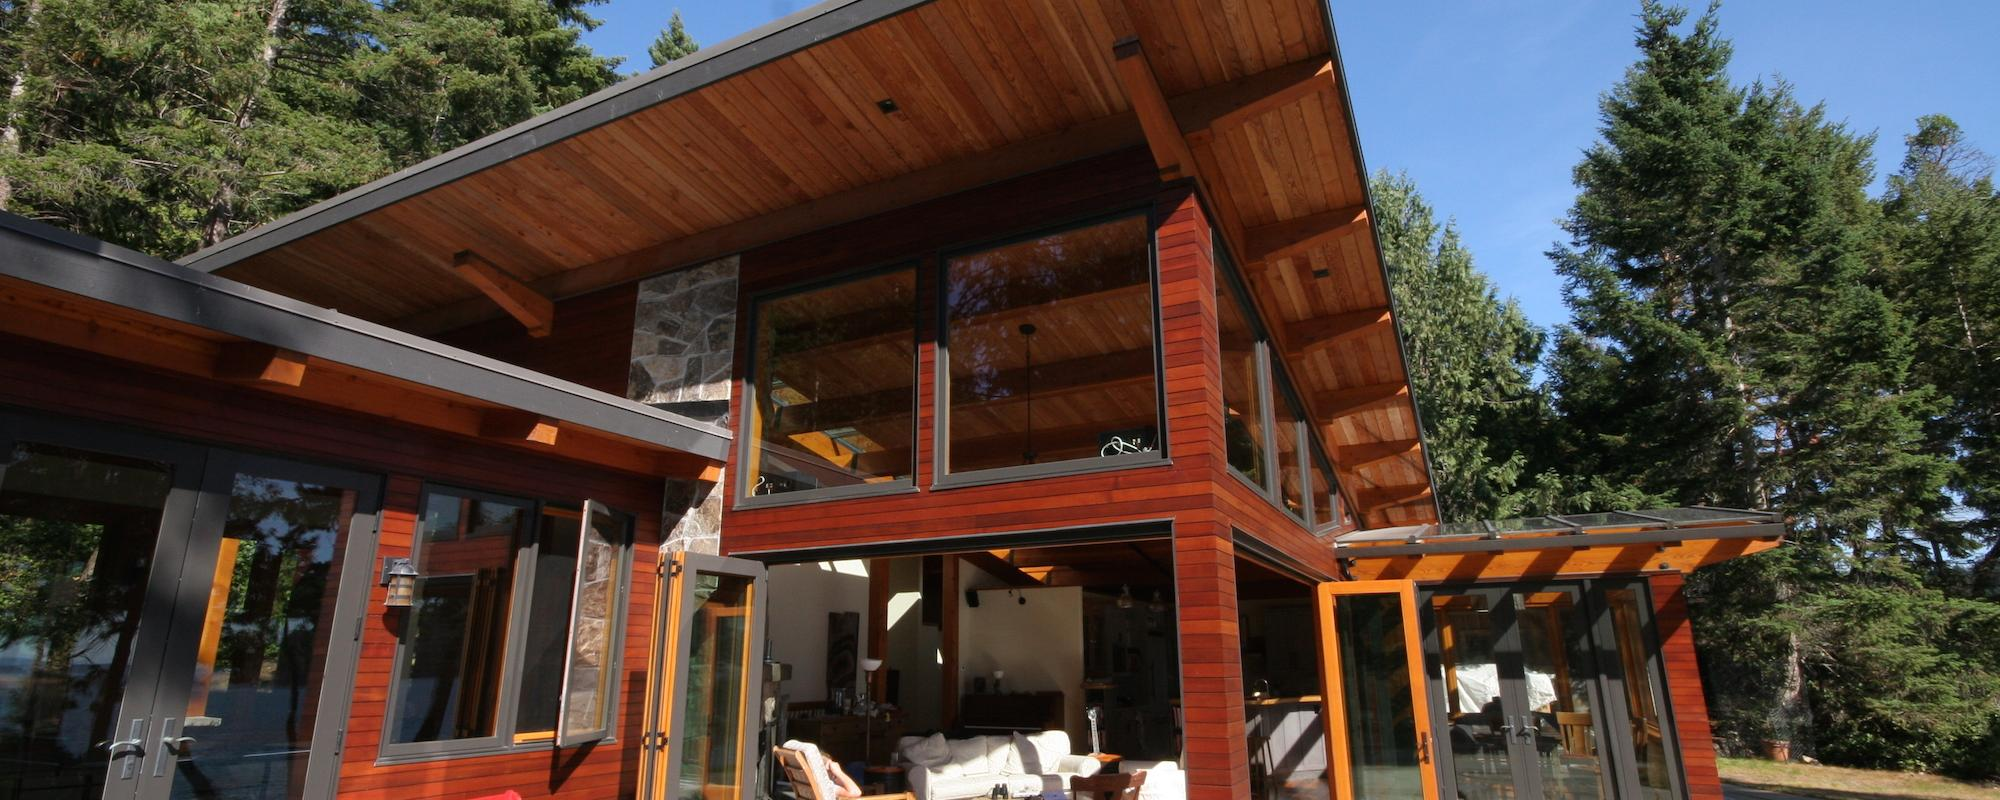 North Pender Home built by Gulf Islands Artisan Homes by Dave Dandeneau